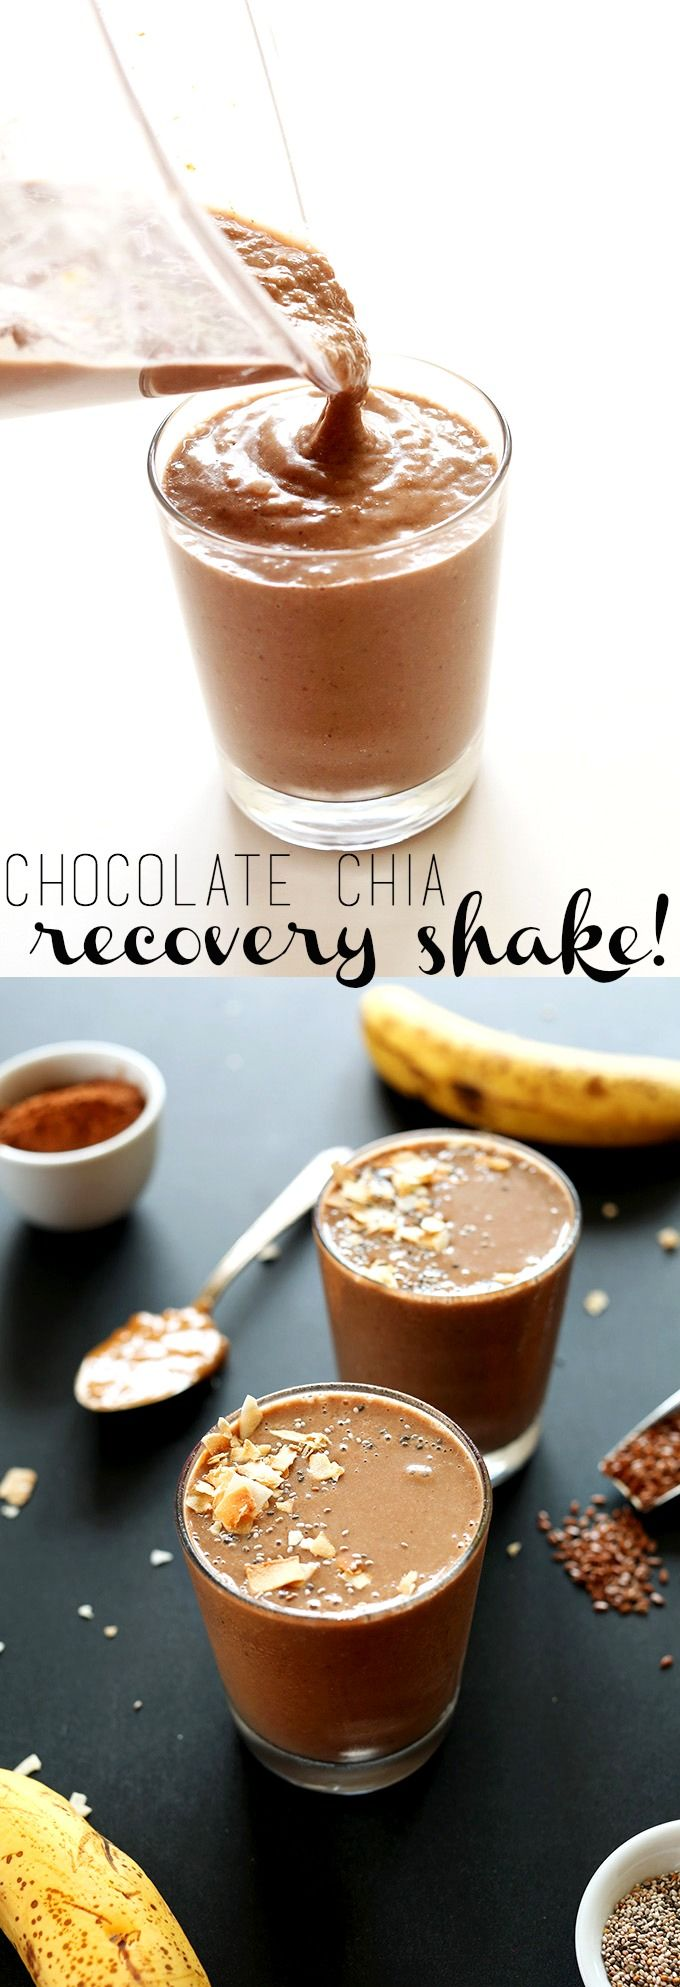 25+ best Post workout drink ideas on Pinterest | Post workout food ...